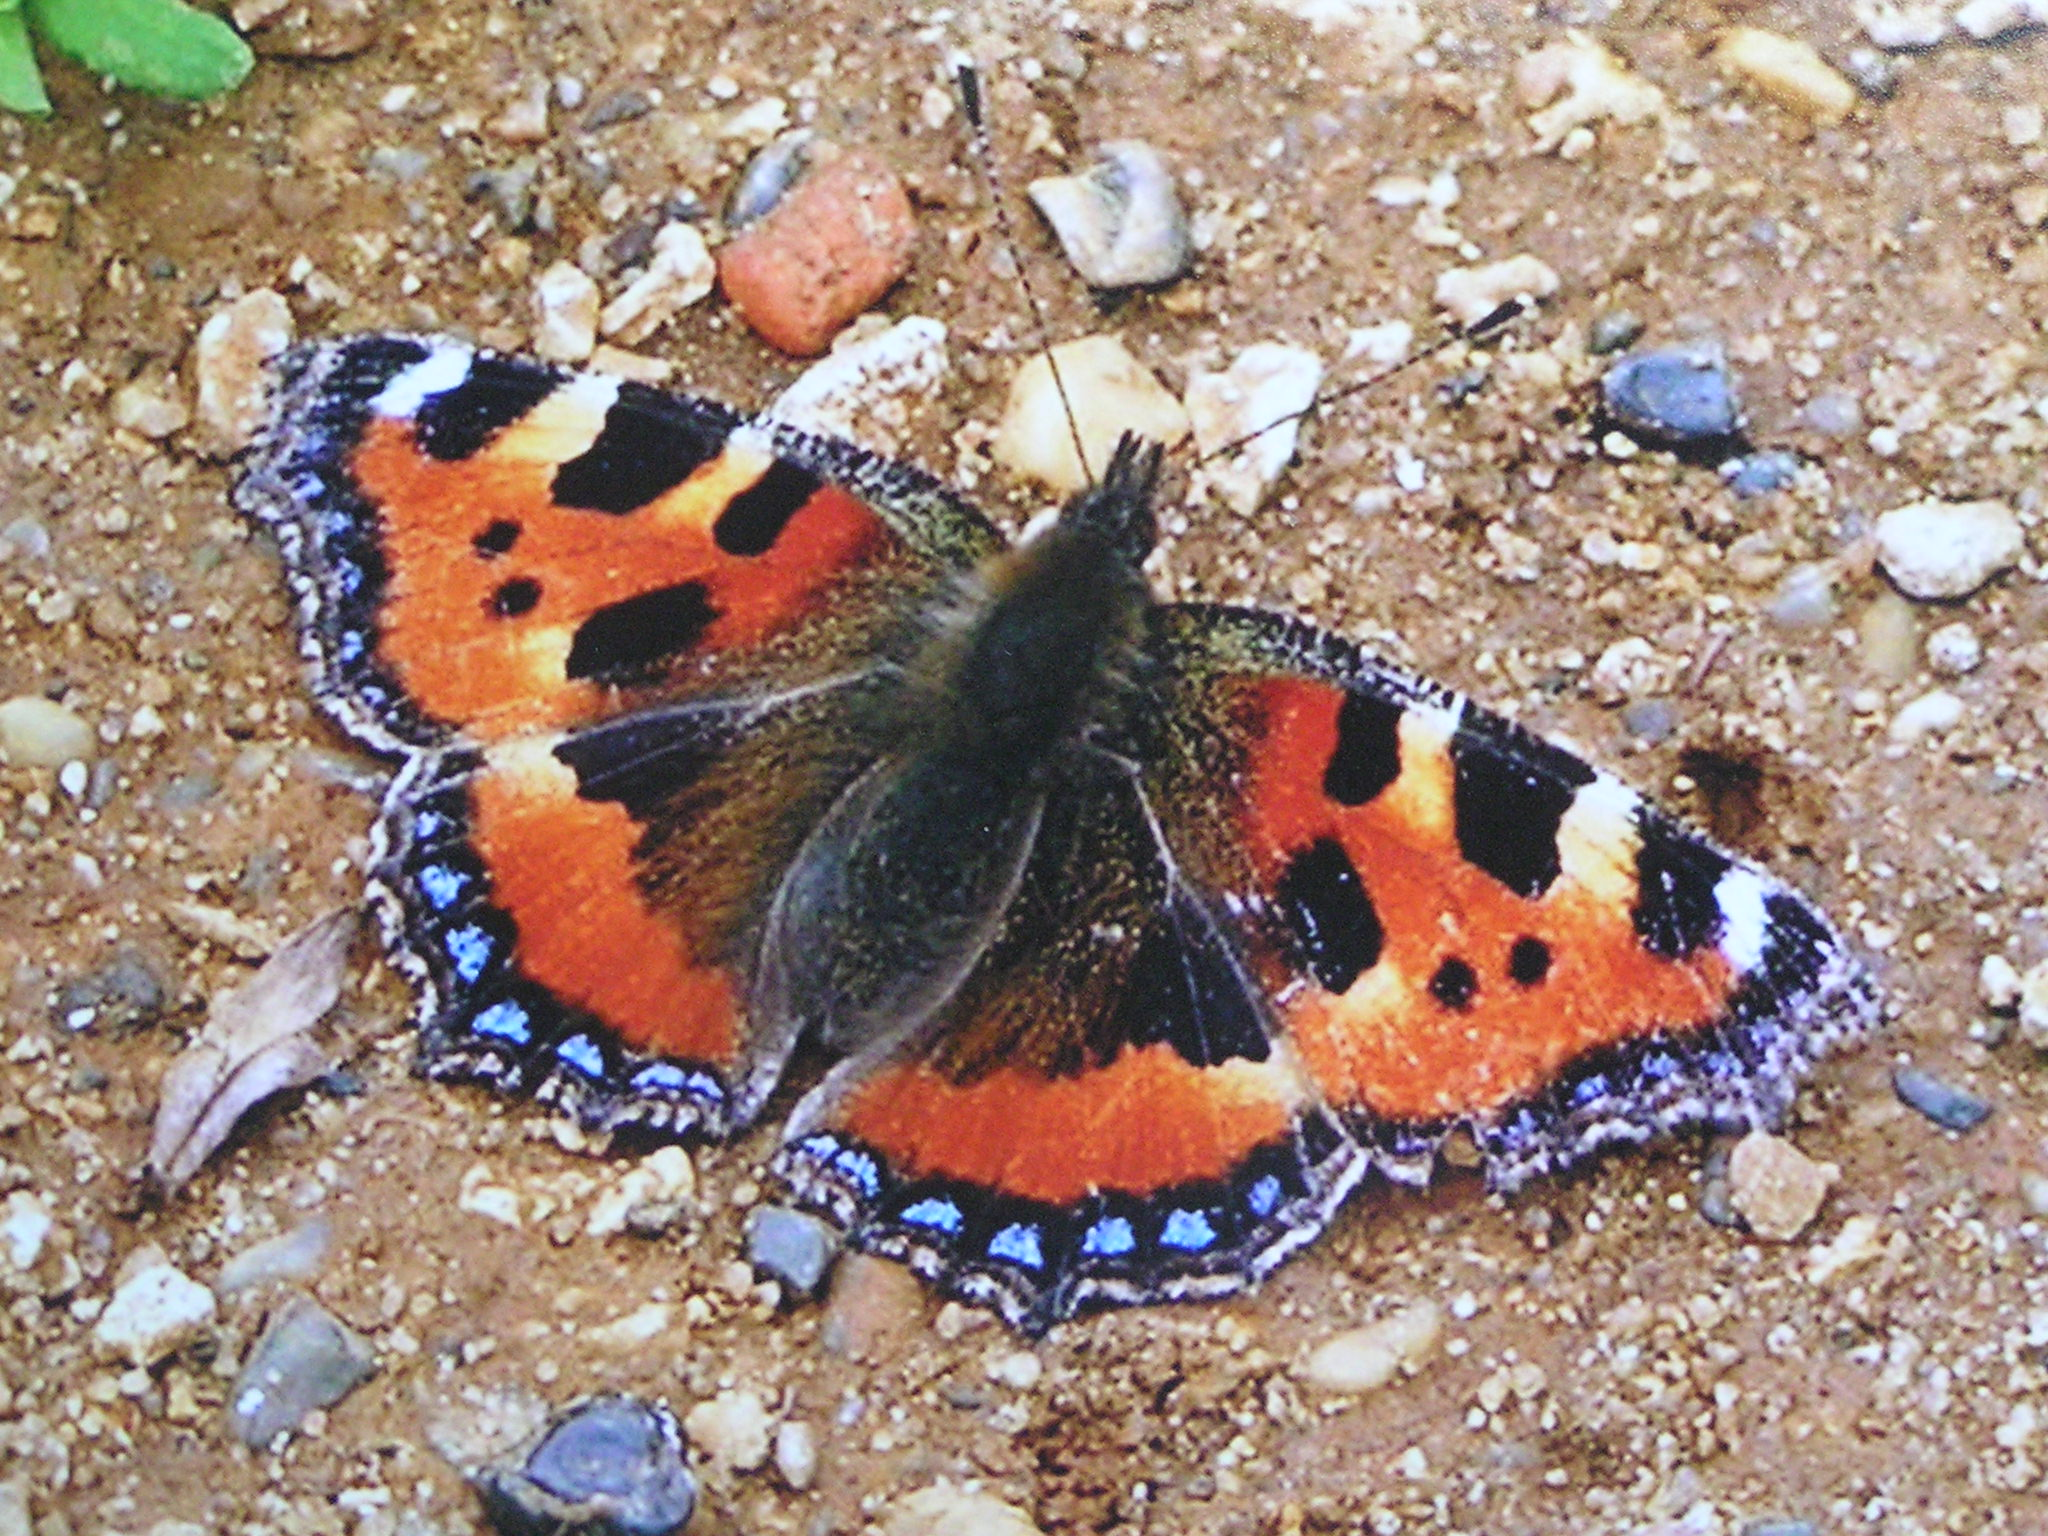 Today's youngsters do not get to enjoy the delights of butterflies compared with yesteryear